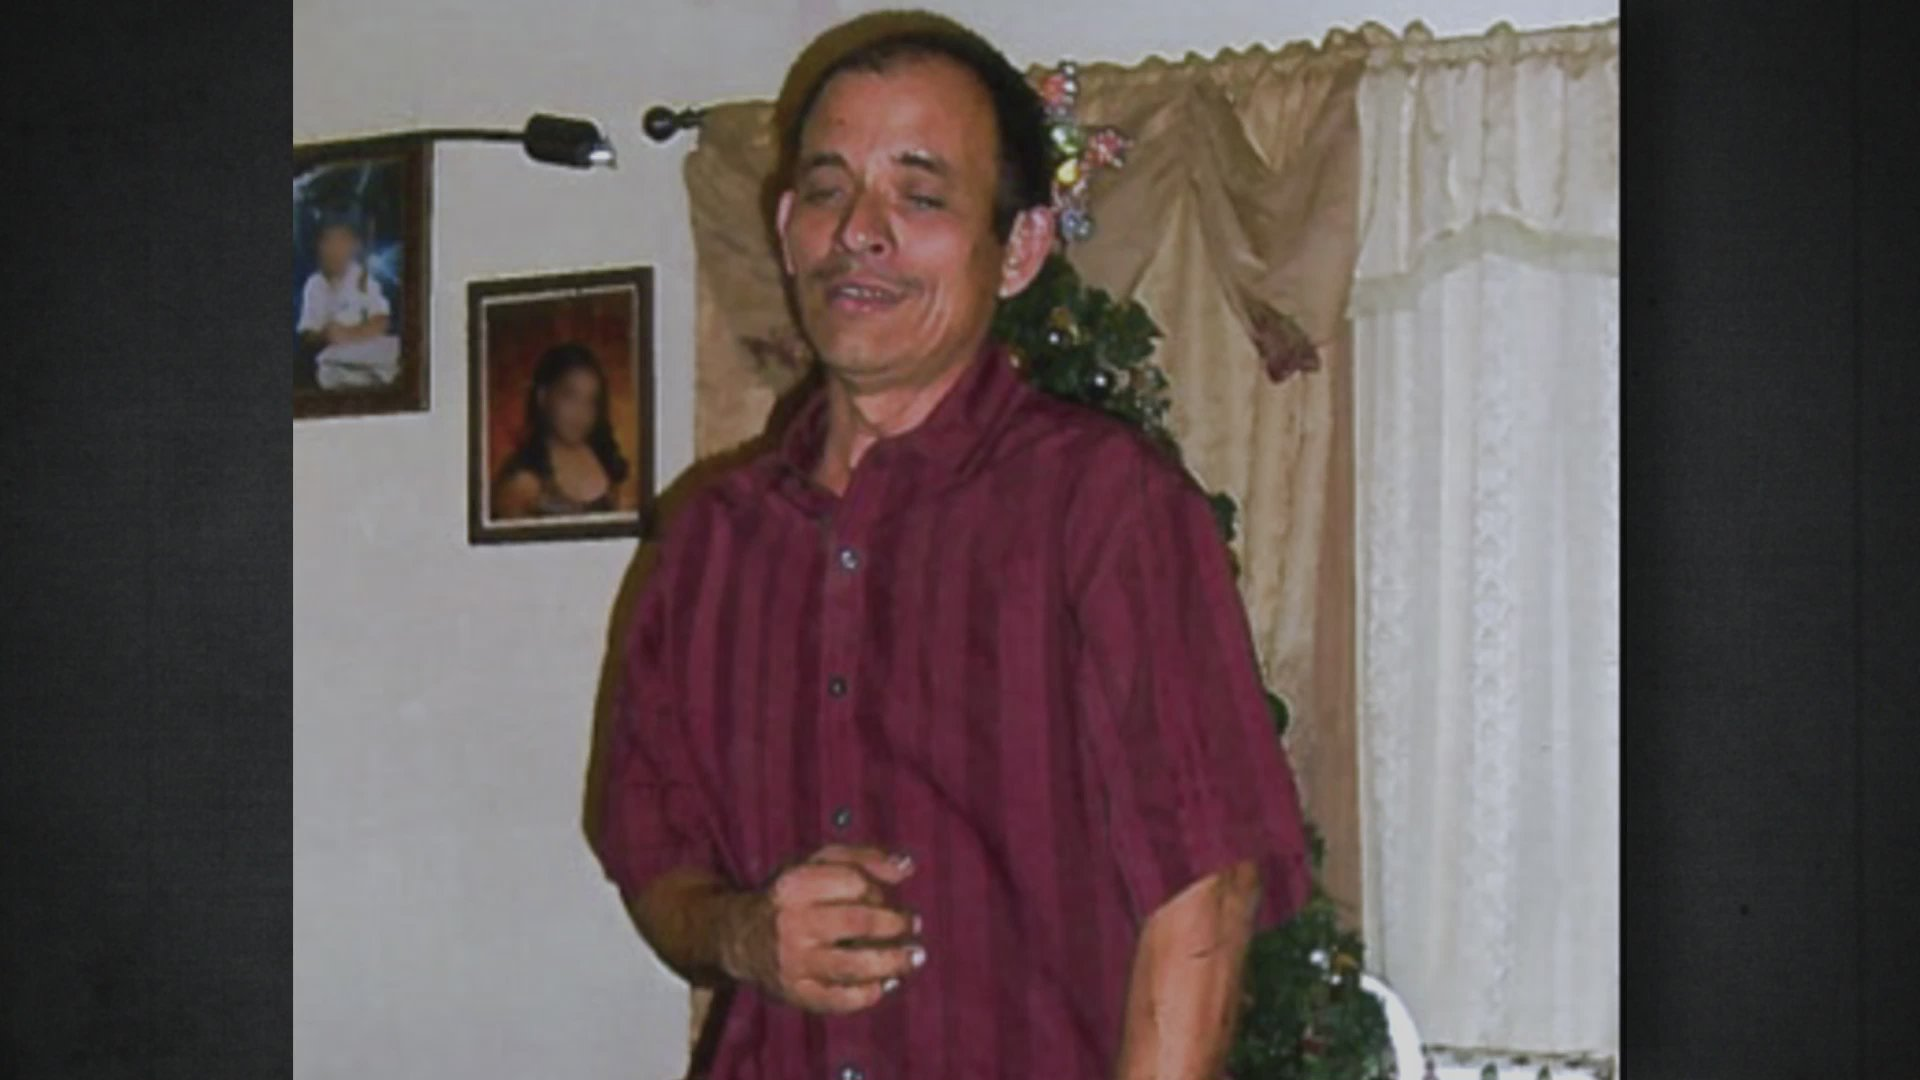 What Happened To Jose Lara, Who Vanished From Compton?